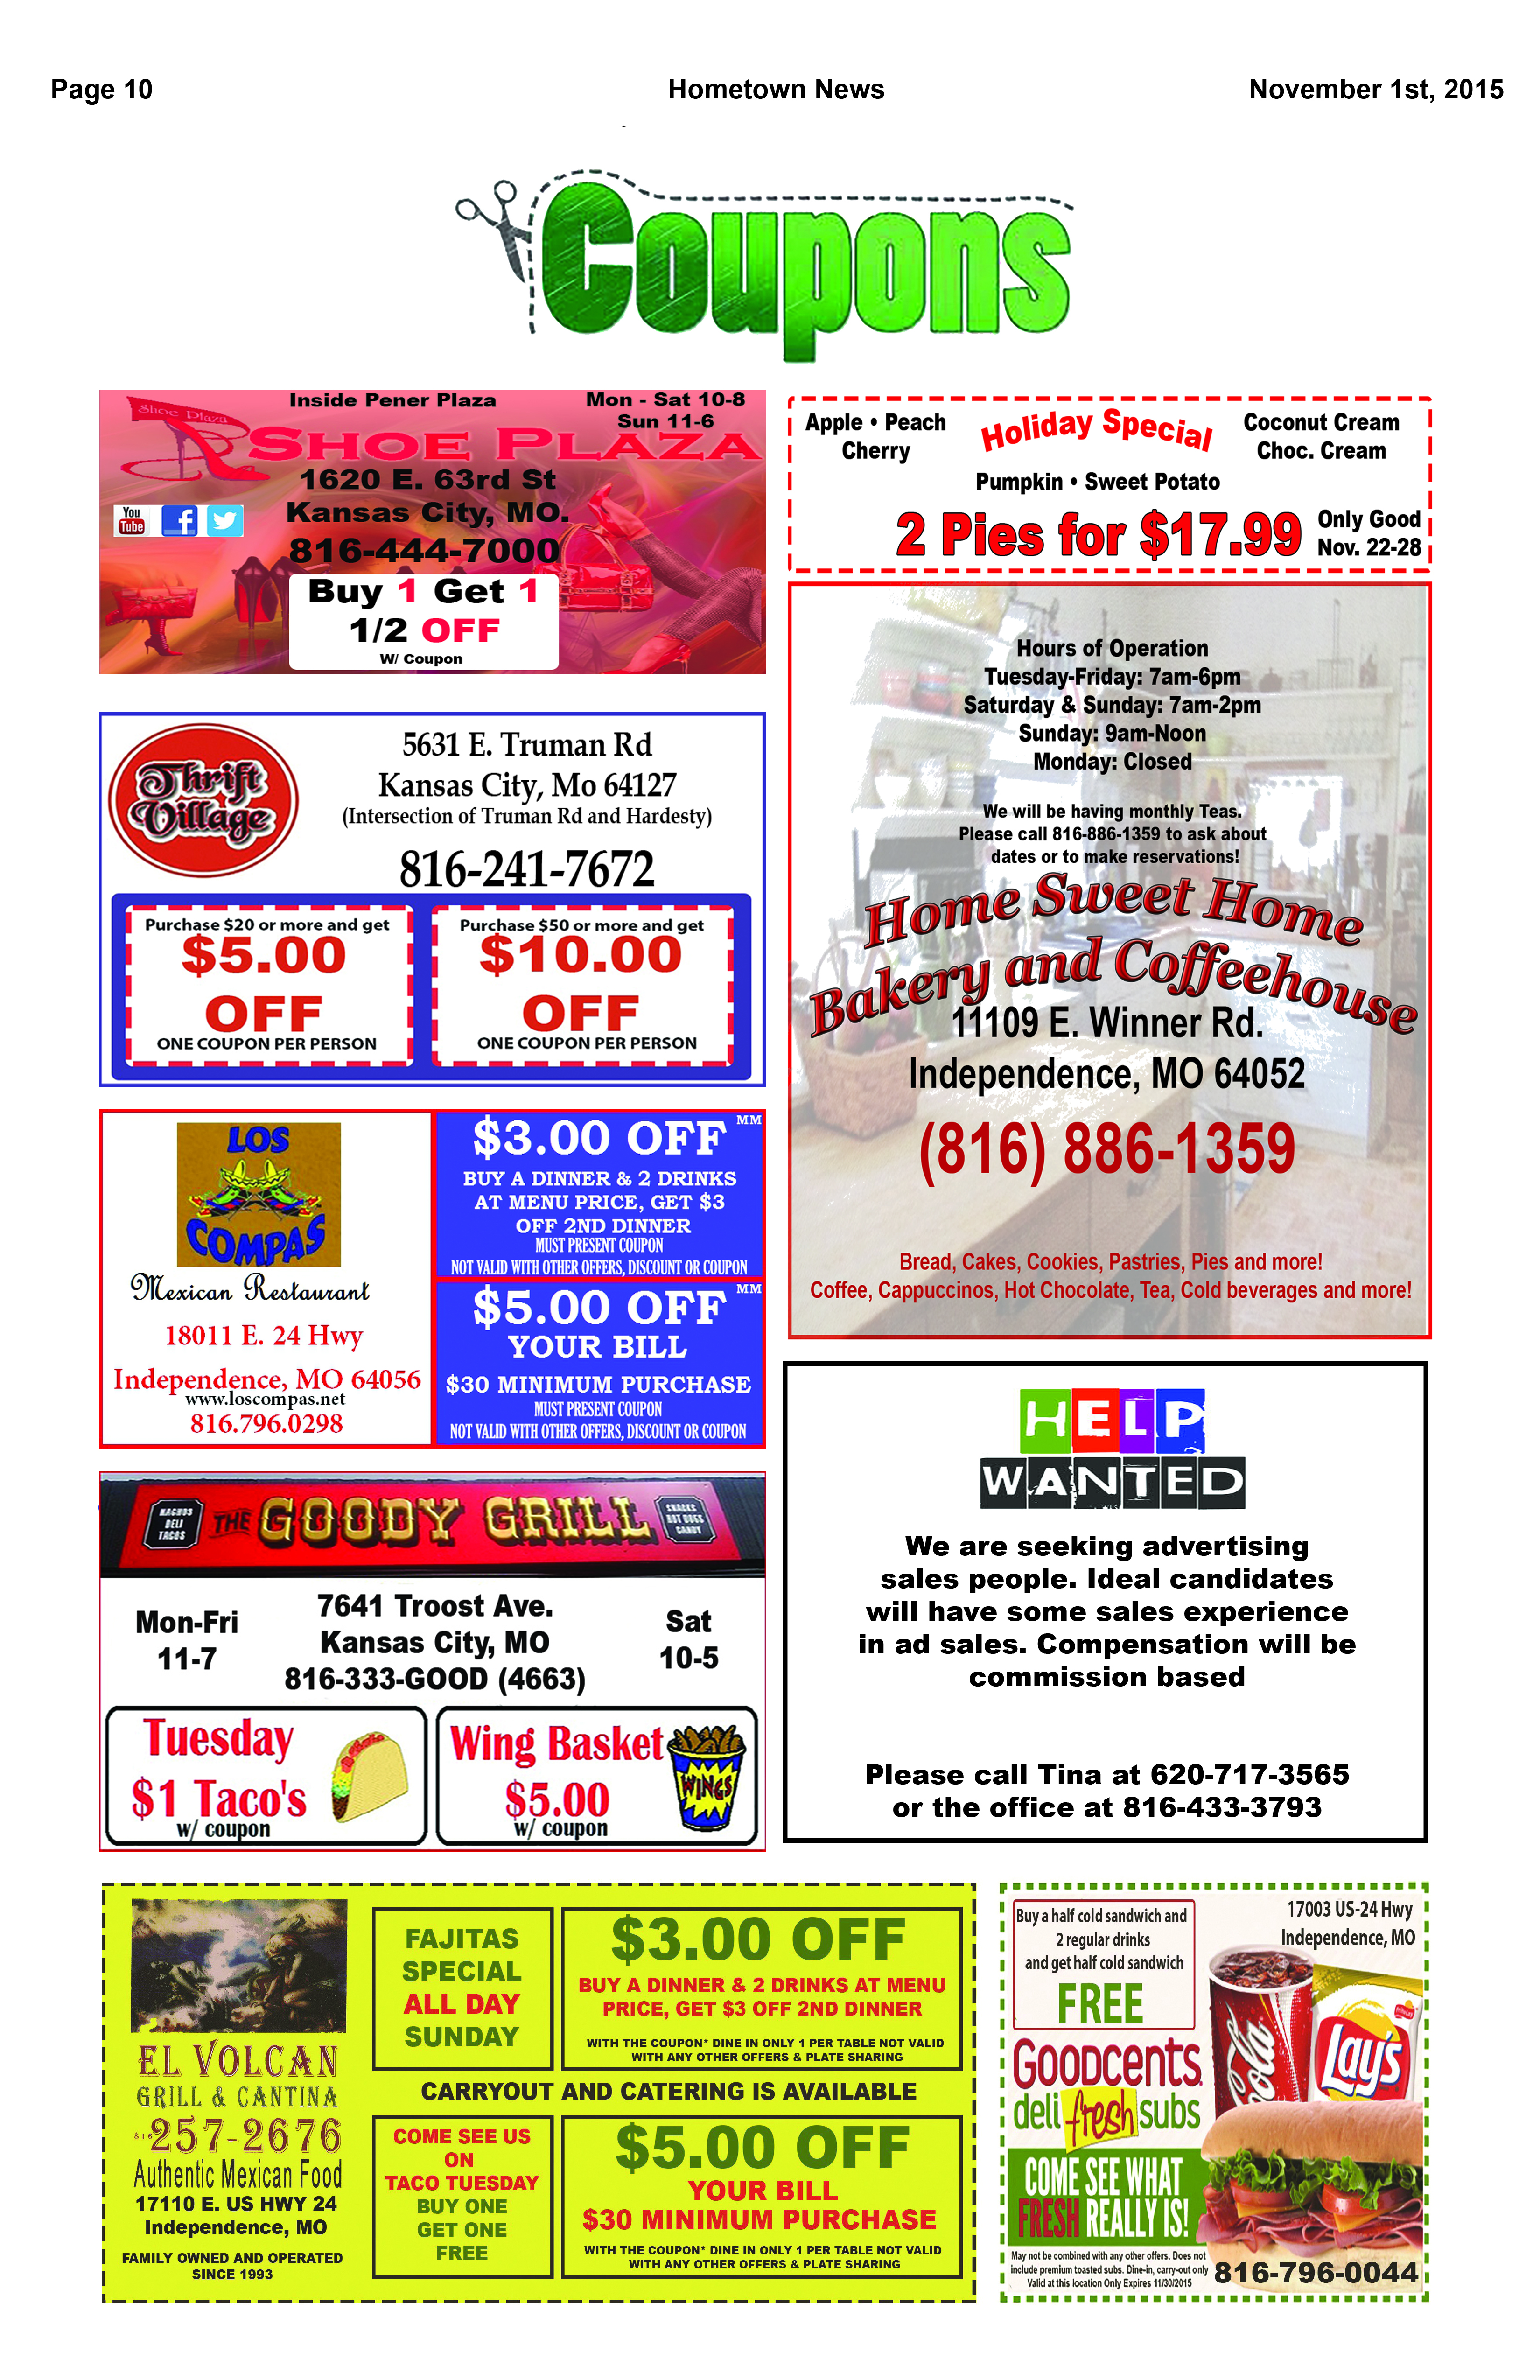 Page 10 Coupons